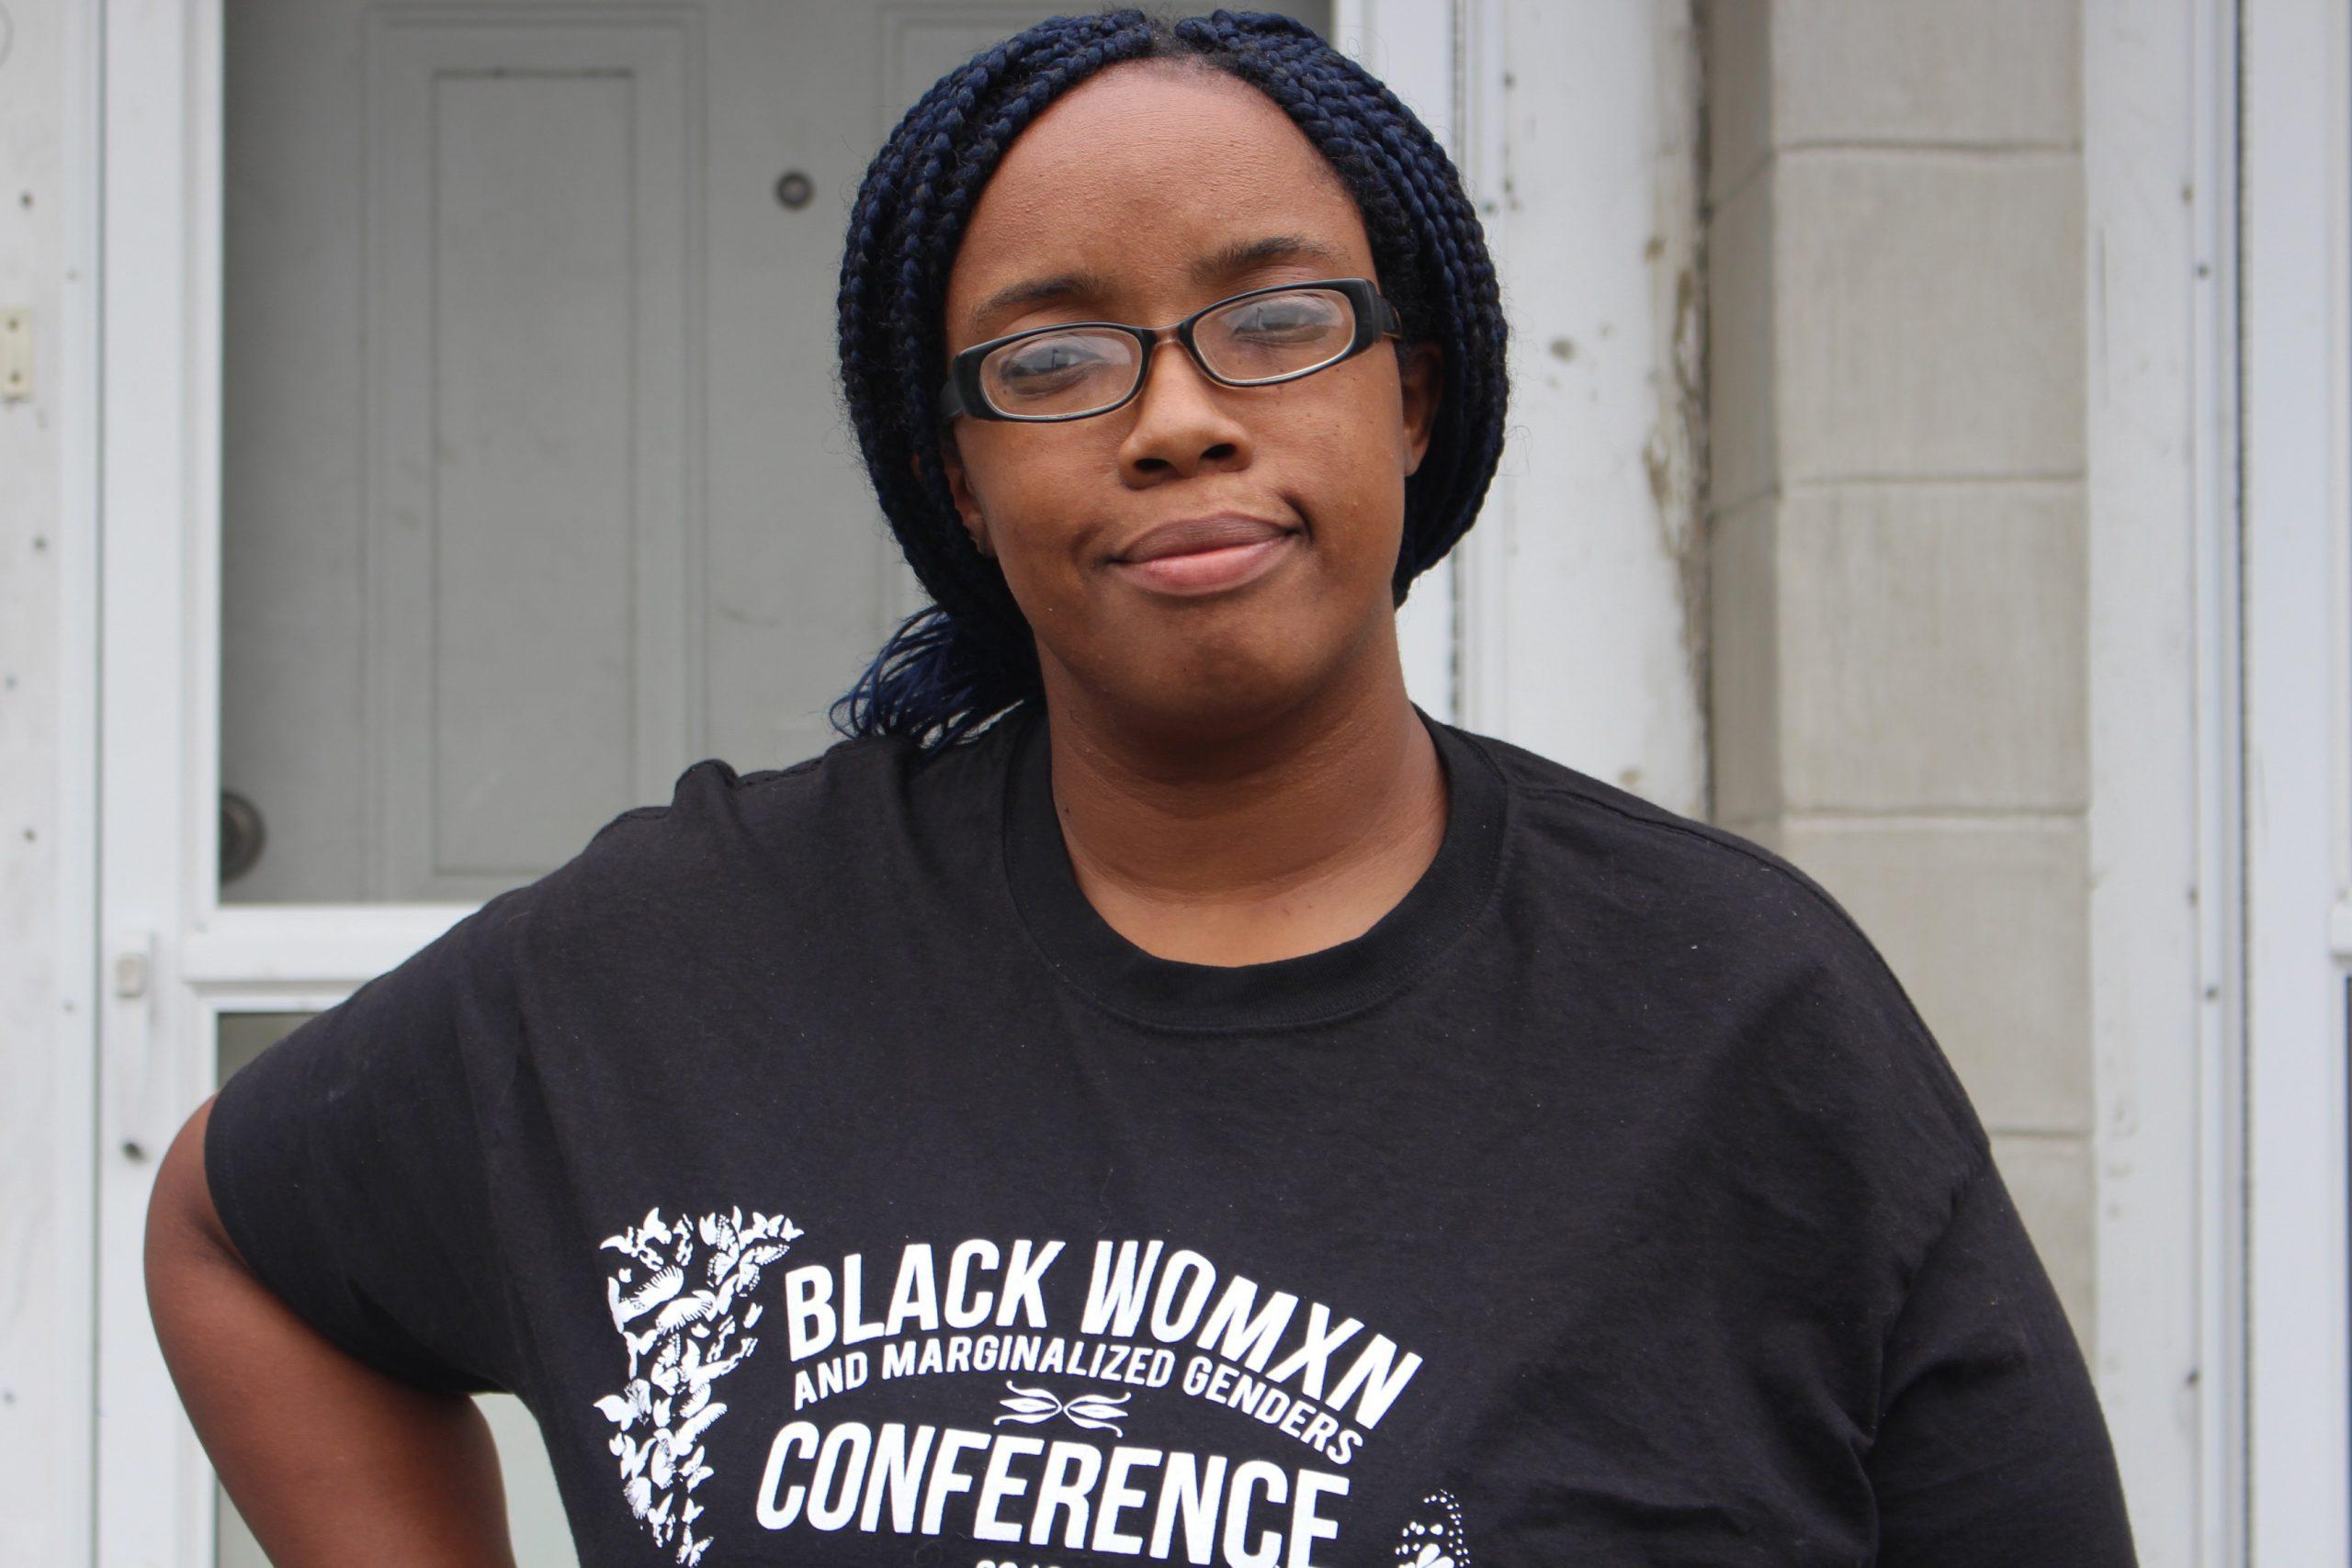 Monica Cannon-Grant outside her home. Photo by Lex Weaver.